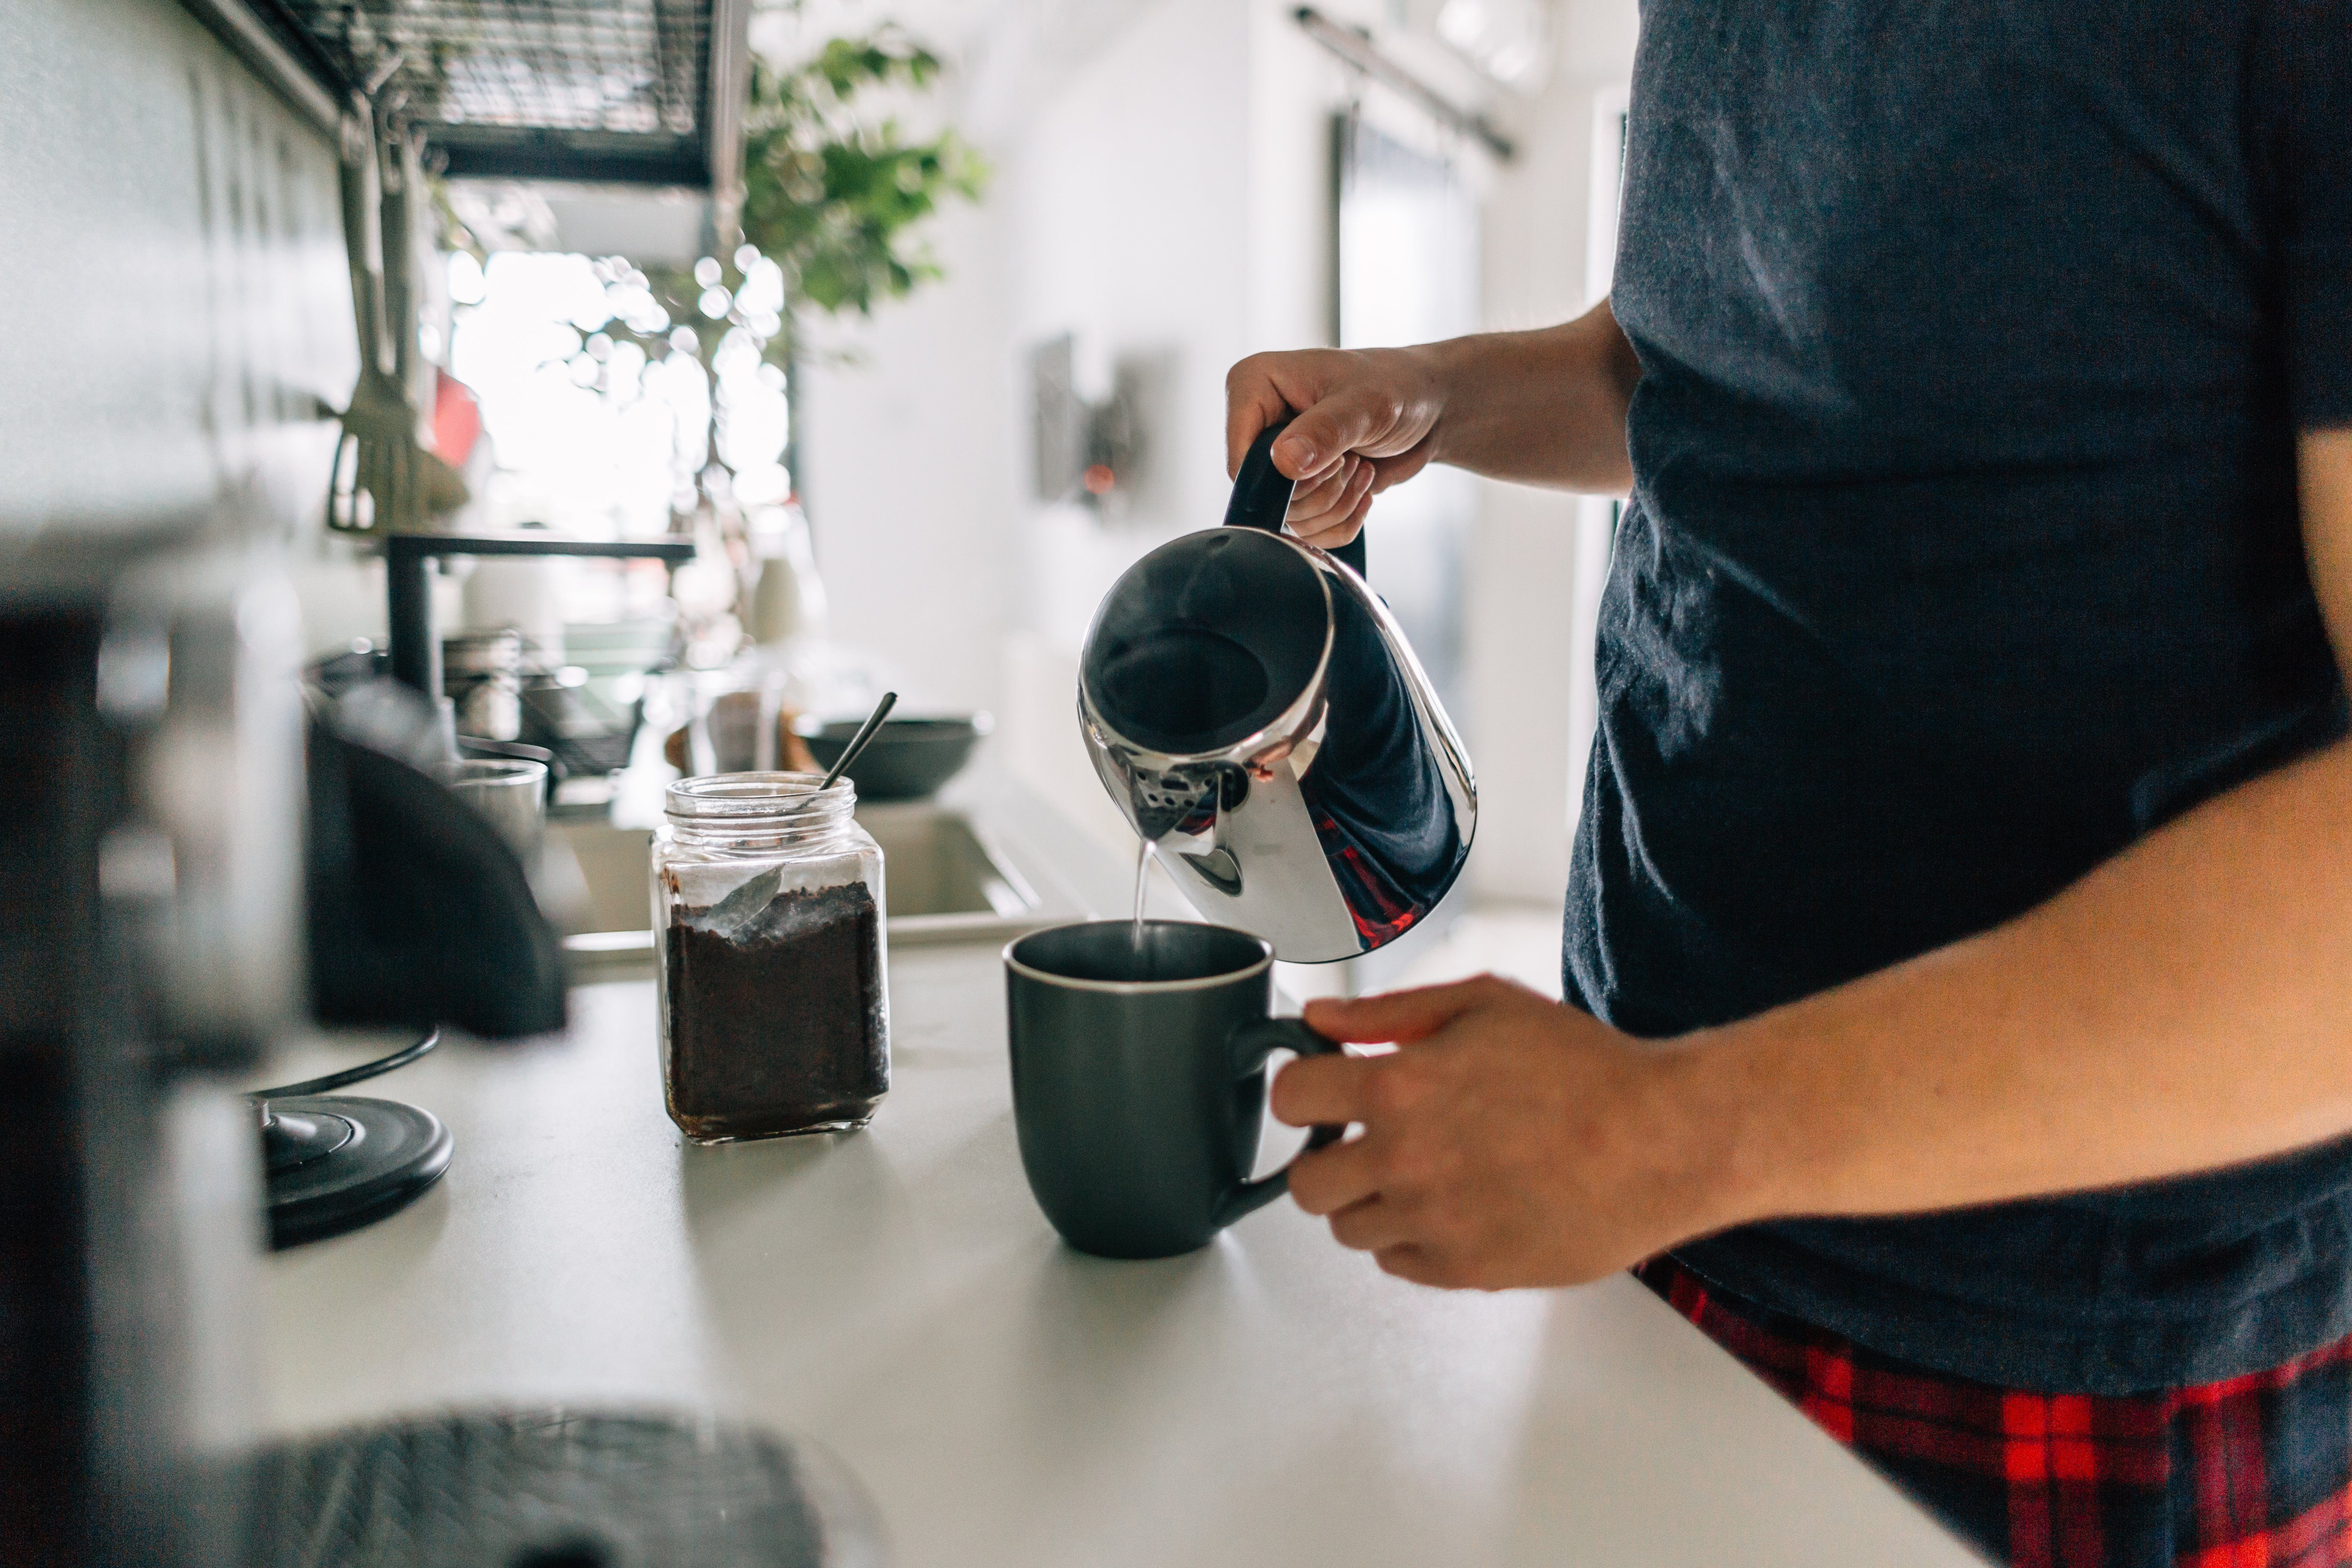 Preparing first cup of coffee in the morning